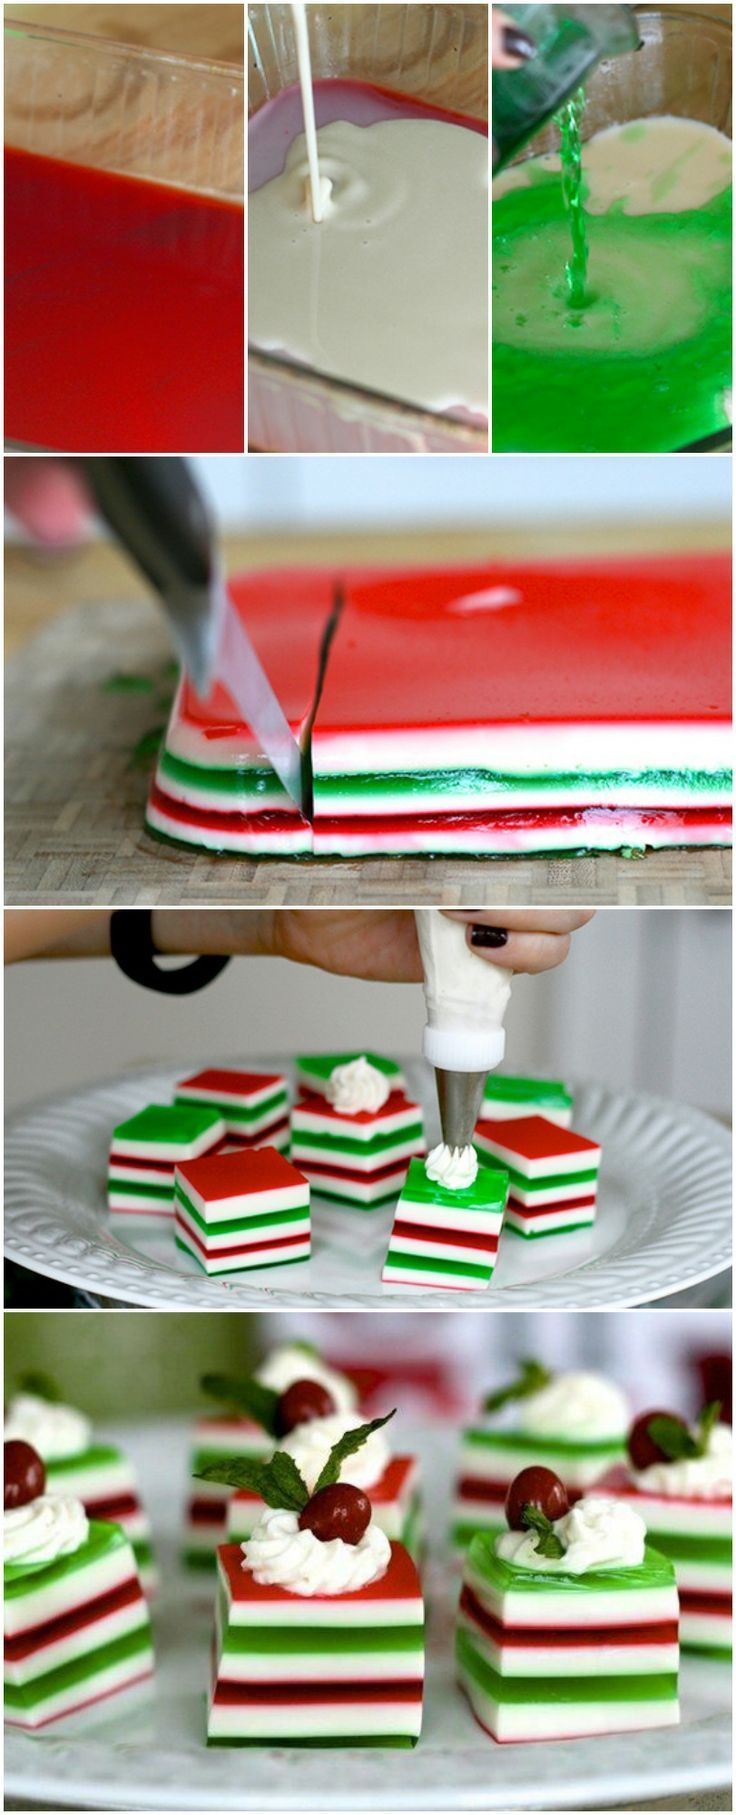 Holly Jolly Jelly Shots - my mother makes these every year (non-alcoholic) and they're not only delicious, but so cute!